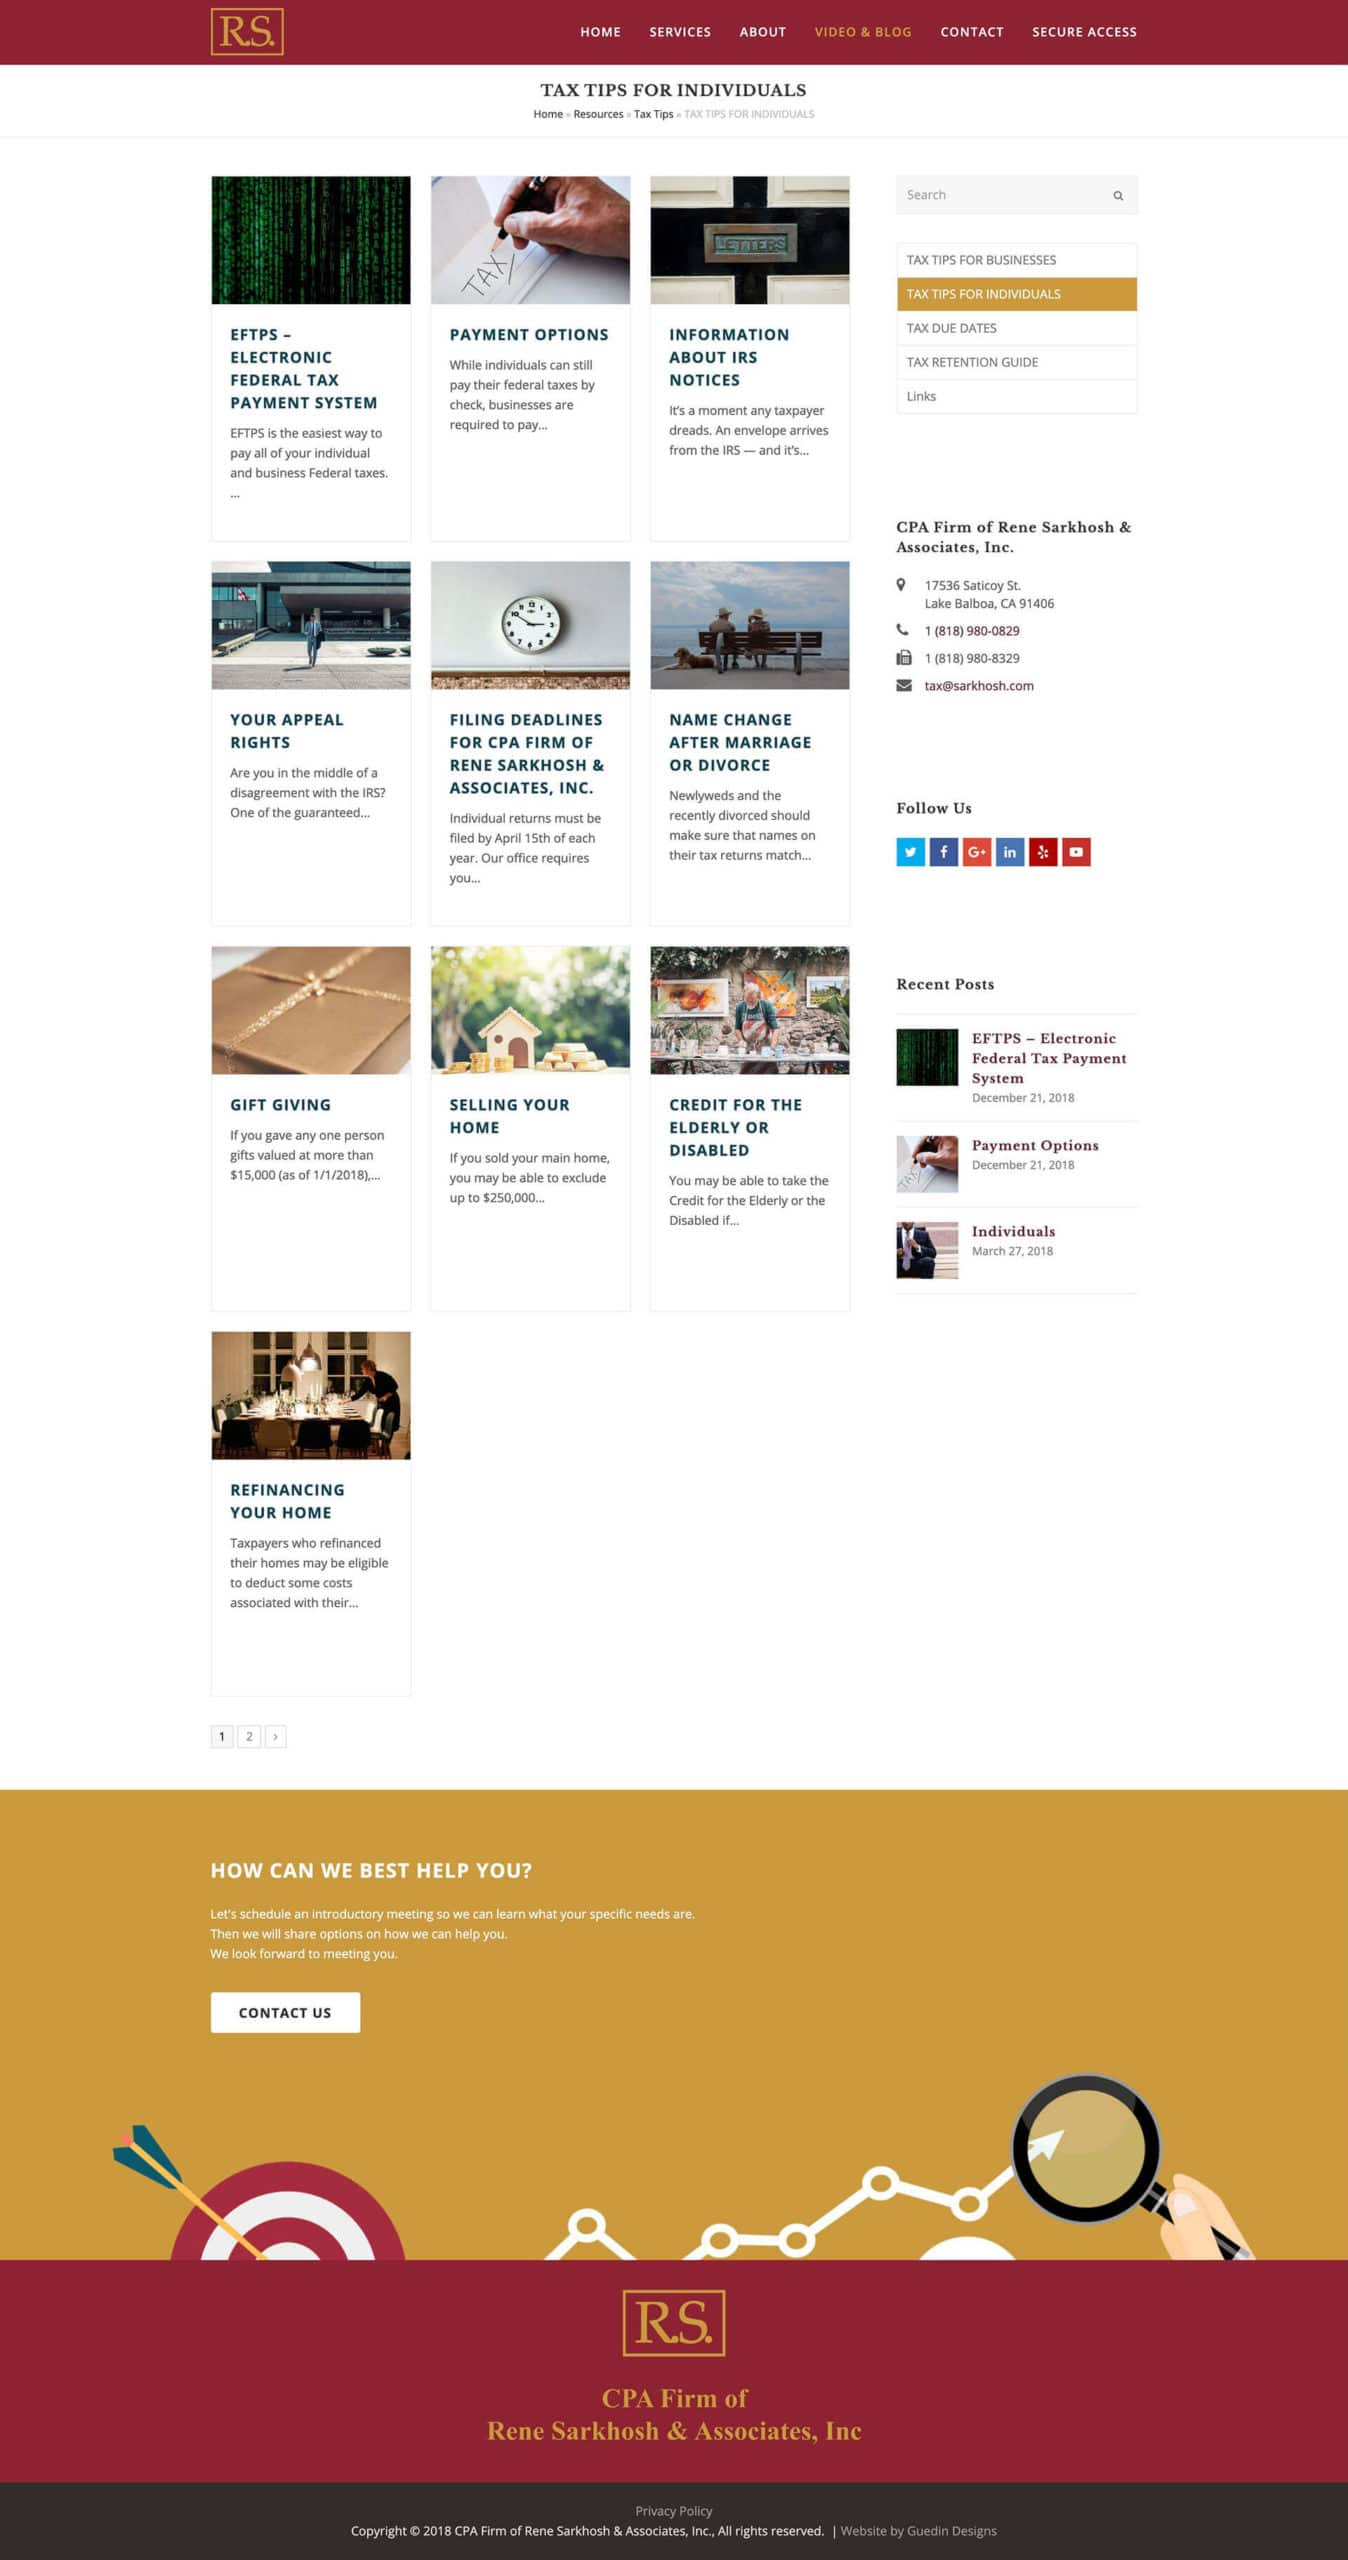 Snapshot of Tips blog page. Web design by Guedin Designs